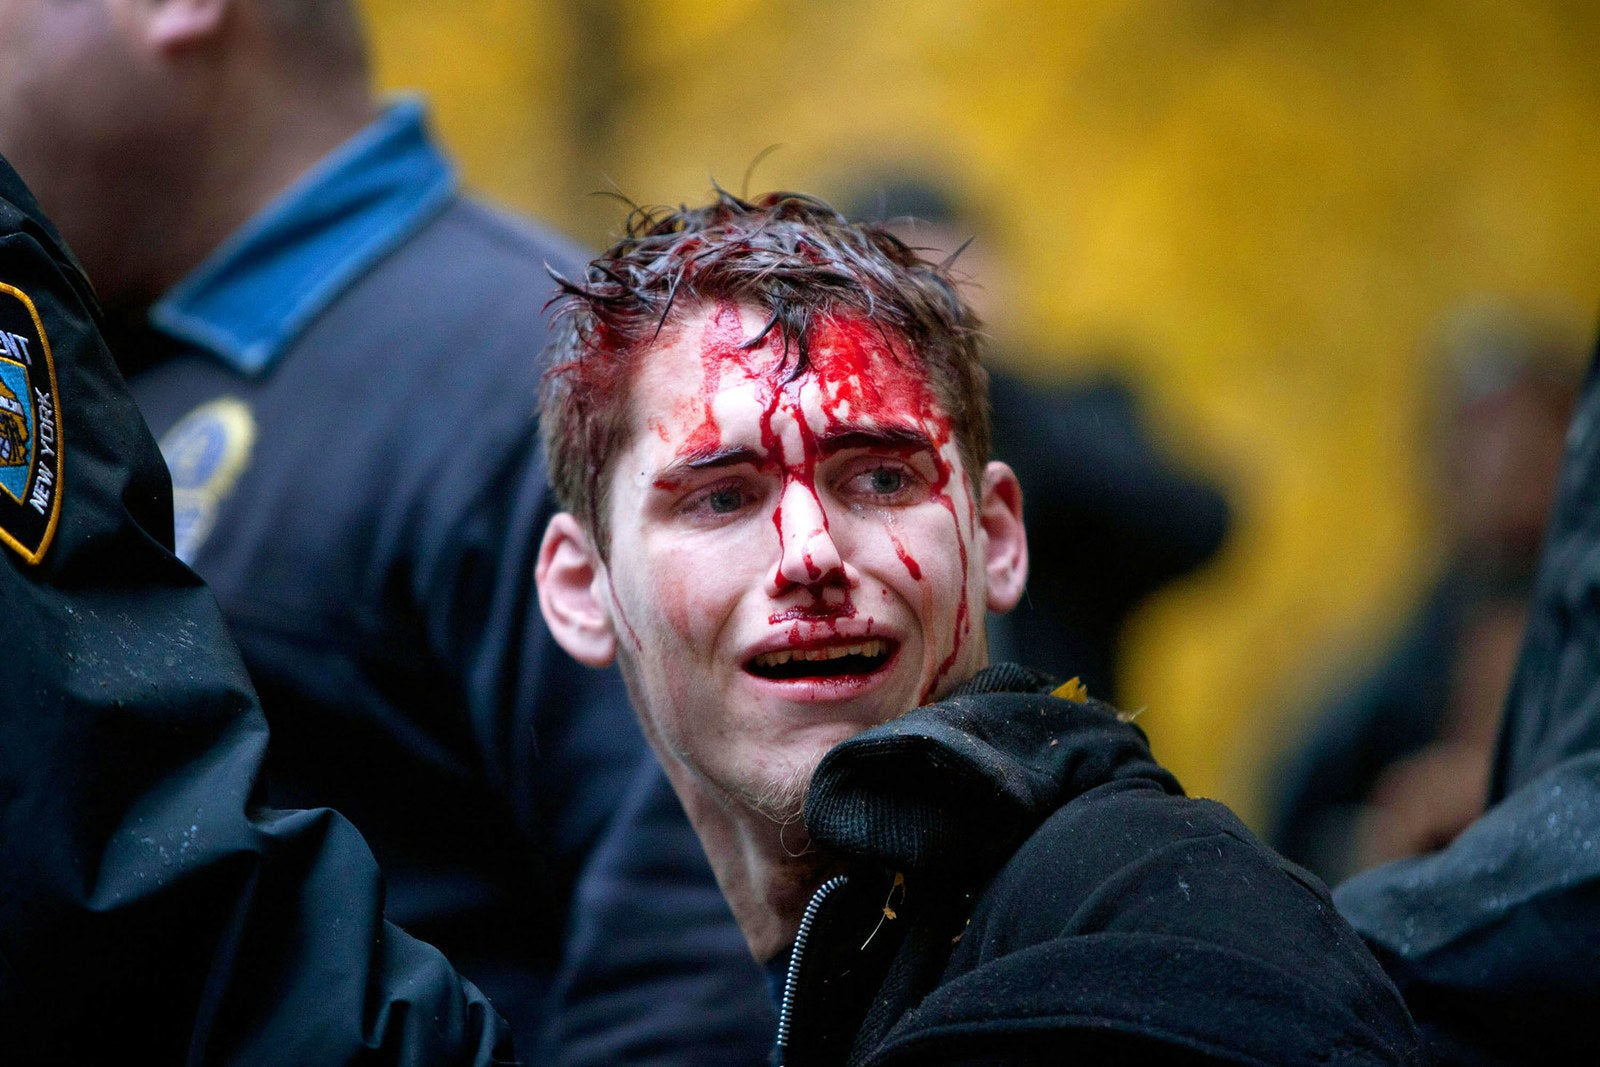 A man is seen with blood on his face after being apprehended by police in Zuccotti Park on Nov. 17, 2011.